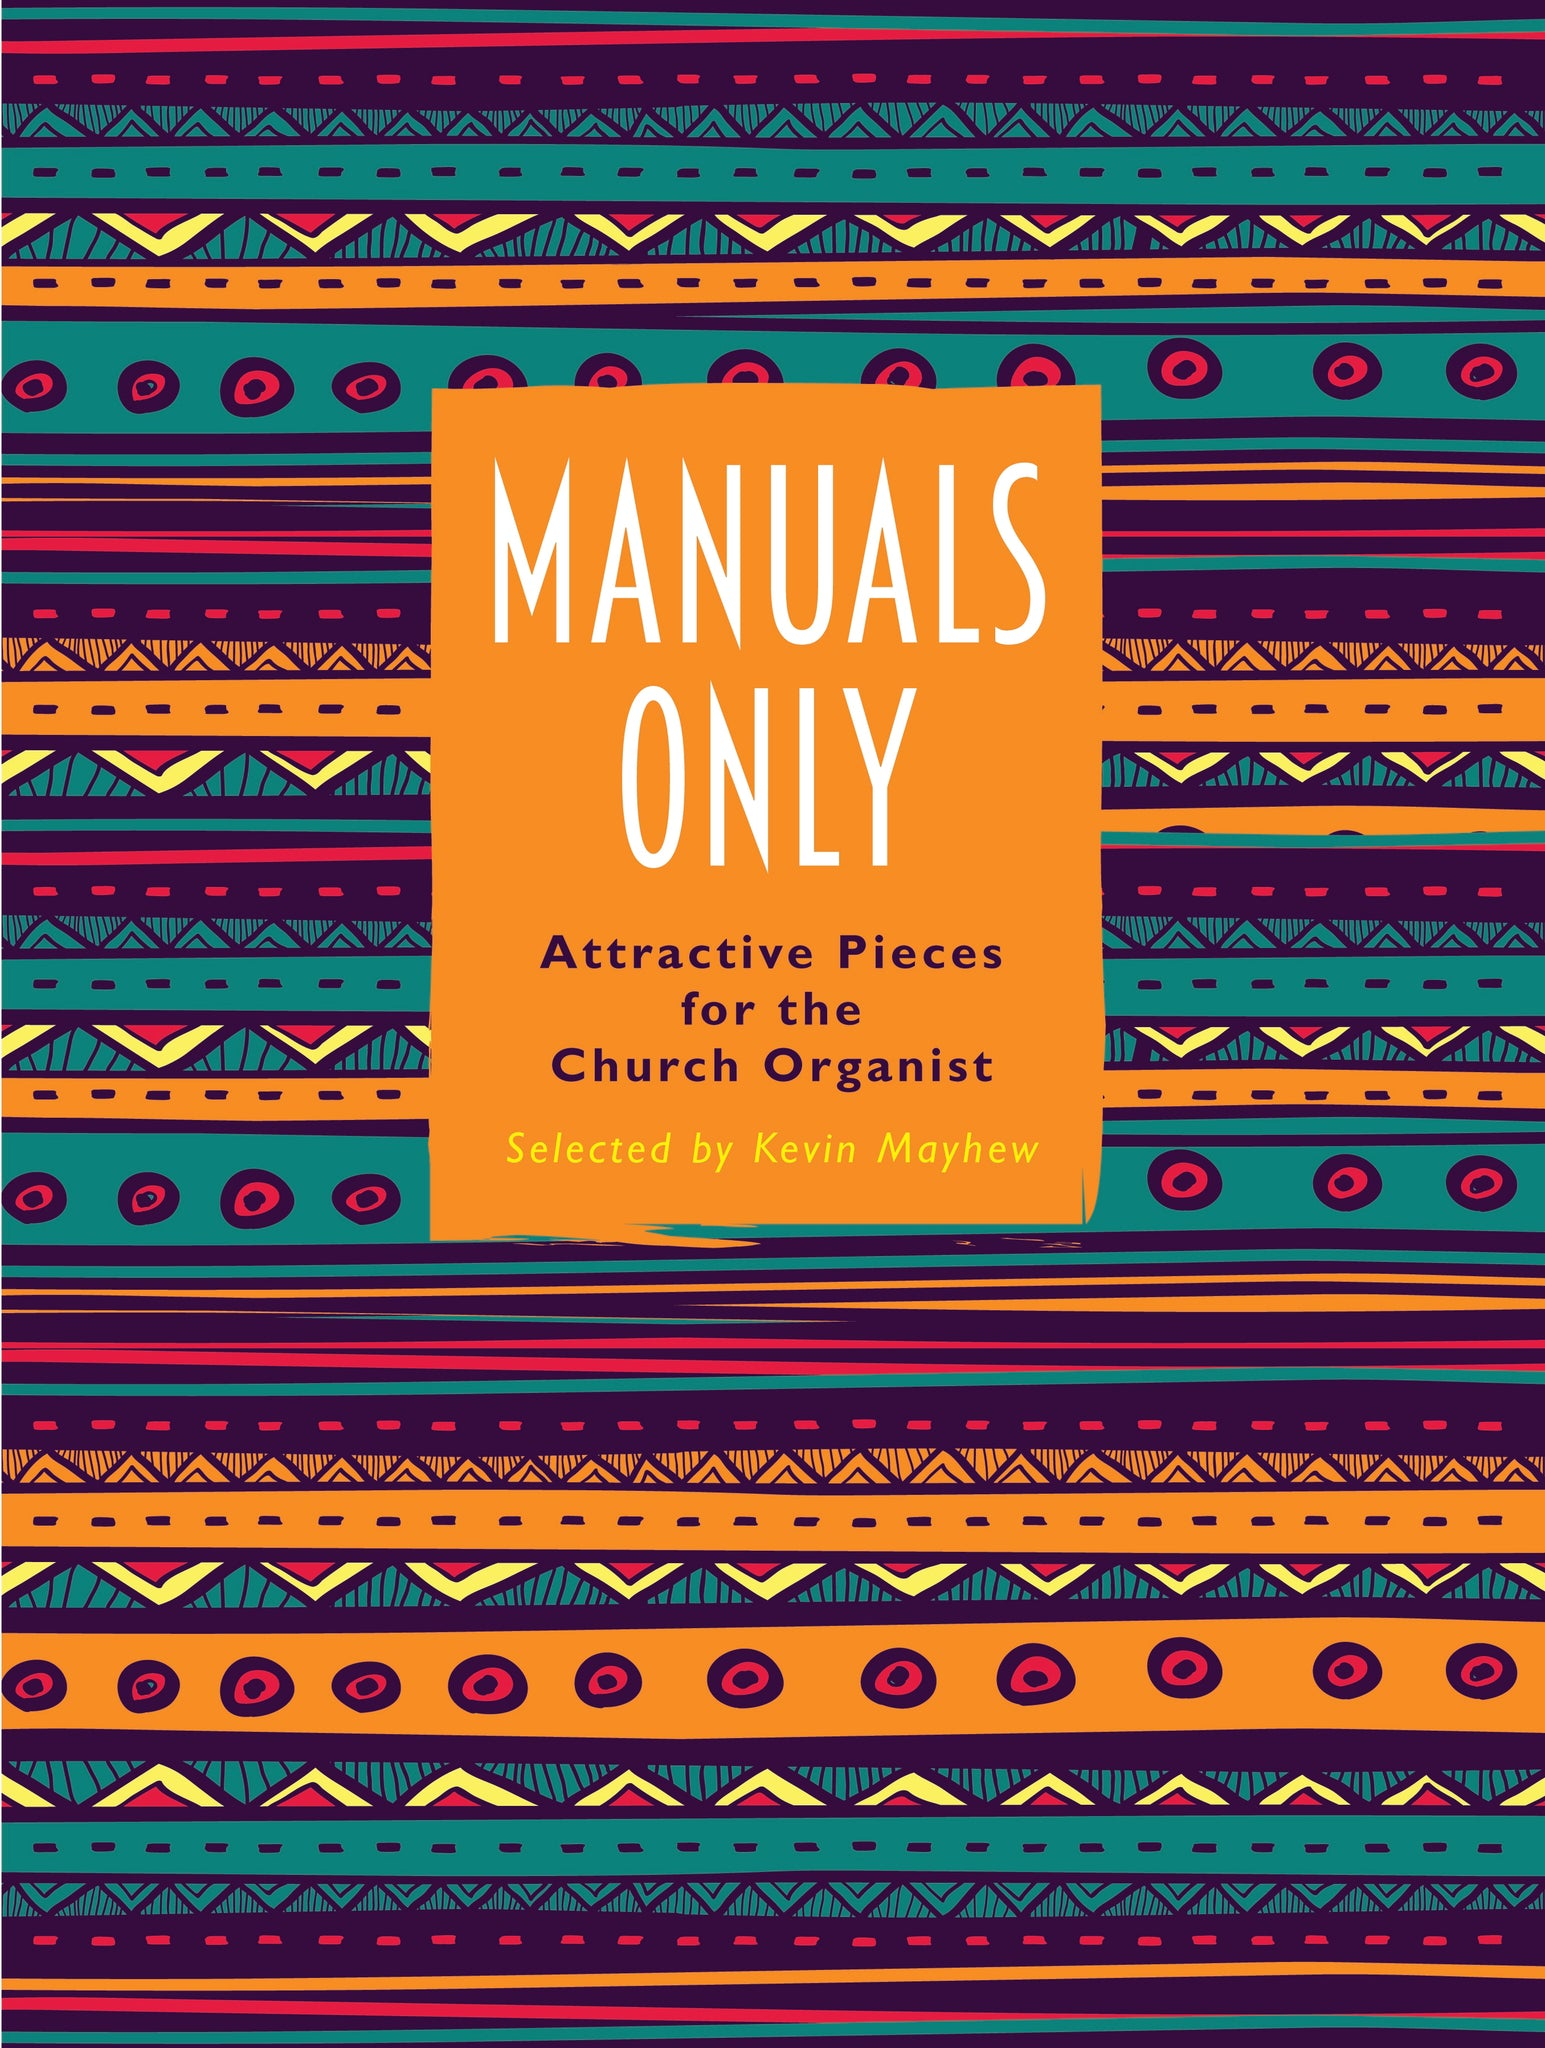 Manuals OnlyManuals Only